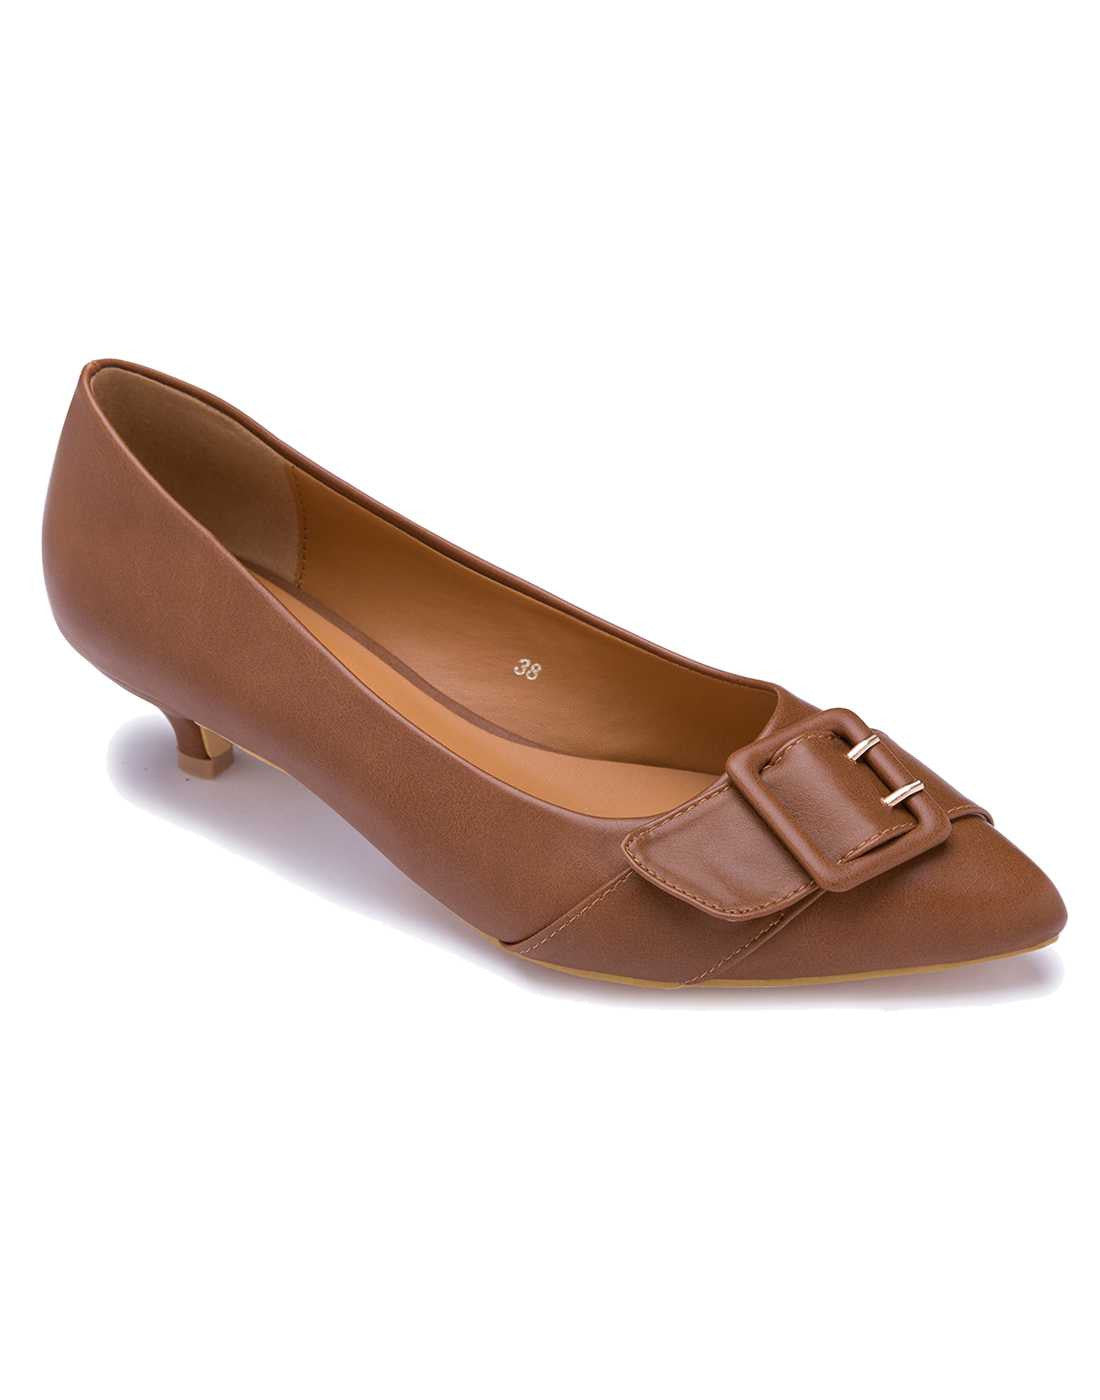 Tan Kitten Heel Sandal